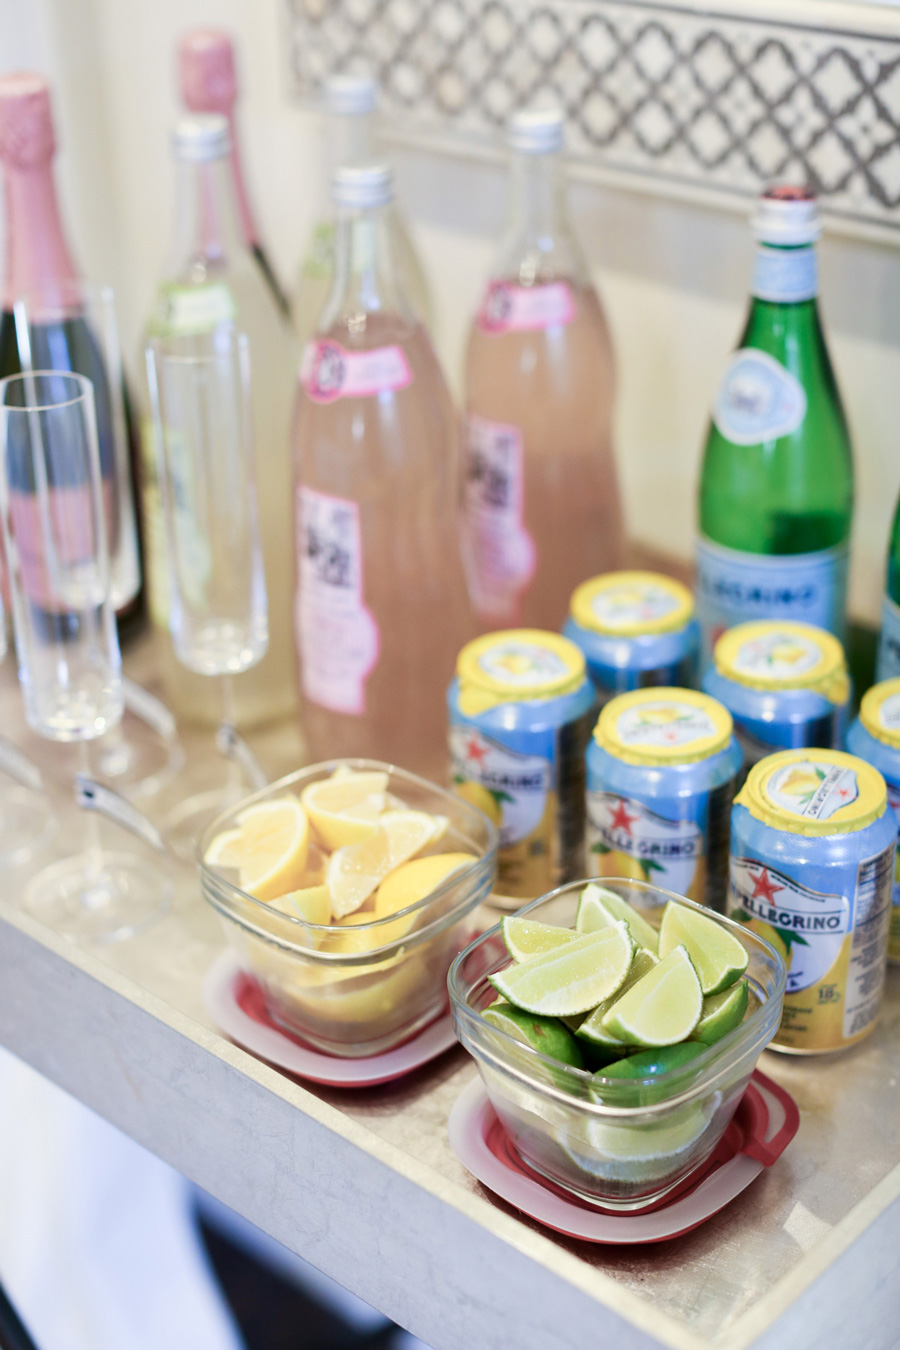 7 Top Tips For Throwing A Grand Party In A Small Home: How To Throw A Great Housewarming Party